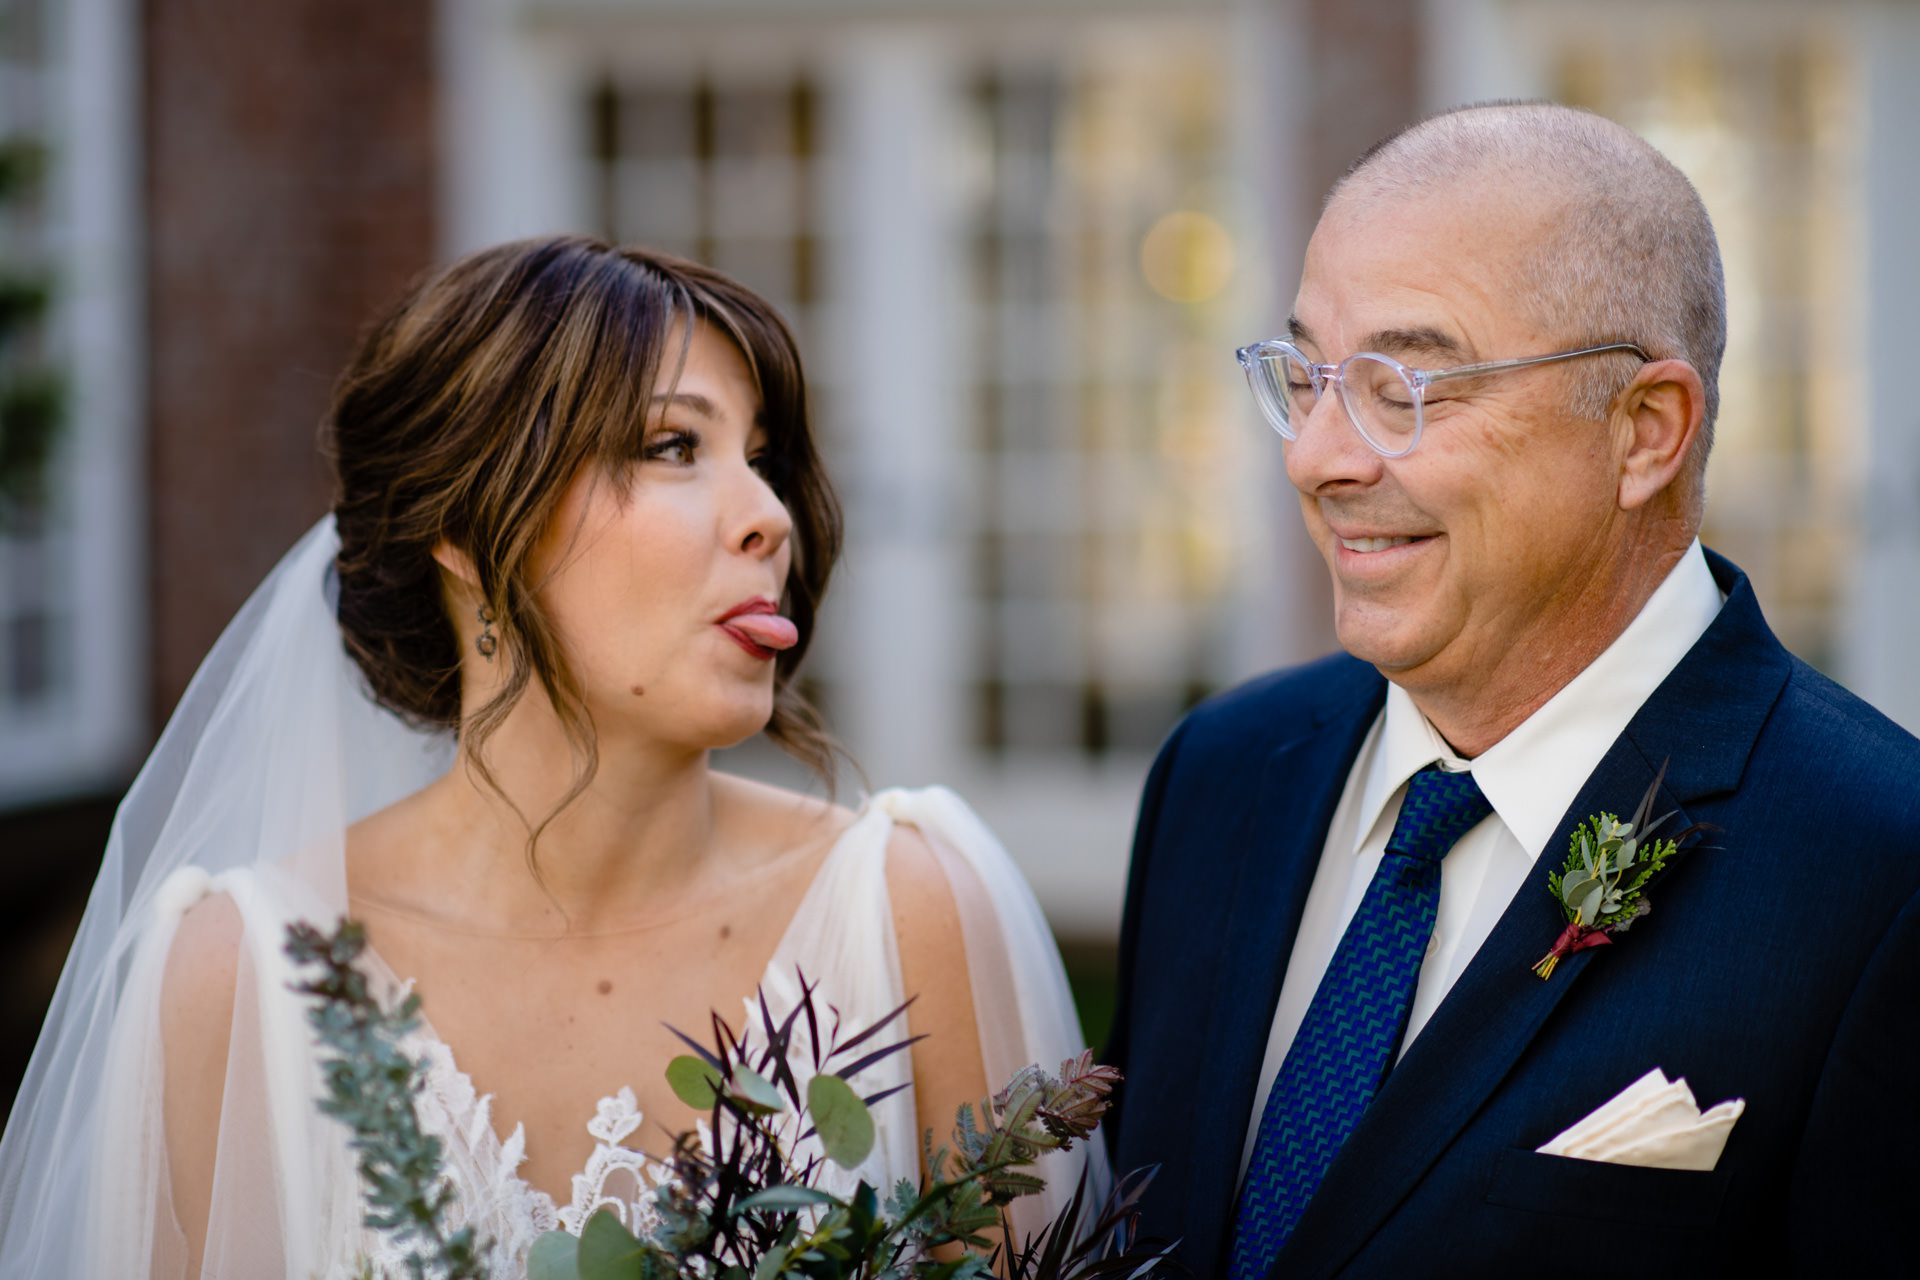 Bride sticking her tongue out at her father before walking down the aisle